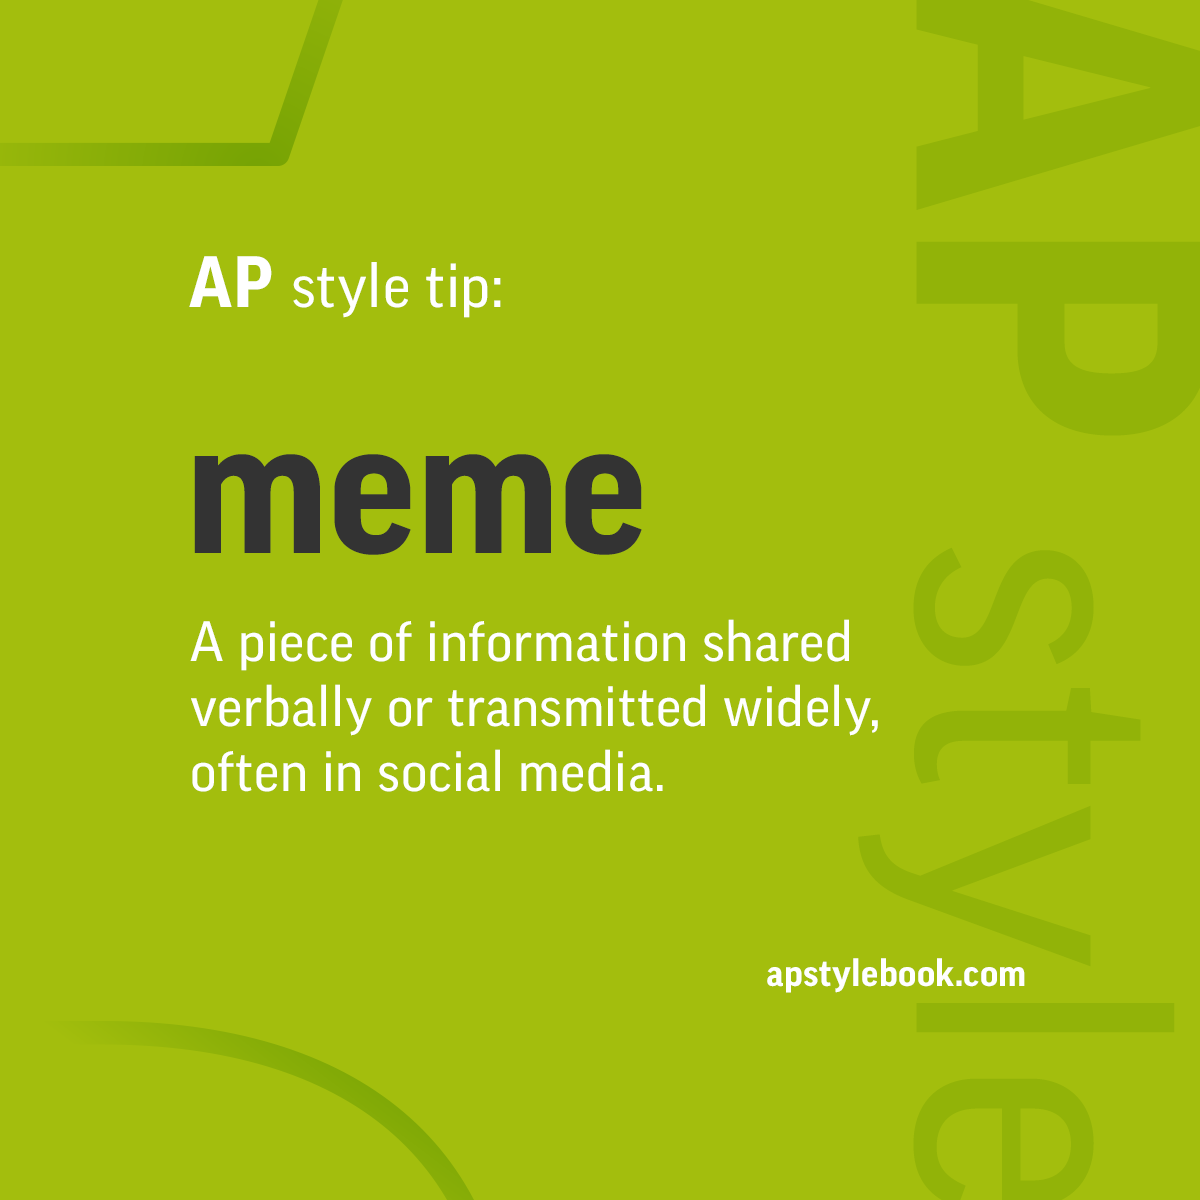 ap stylebook on twitter ap style tip a meme is a piece of information shared verbally or. Black Bedroom Furniture Sets. Home Design Ideas